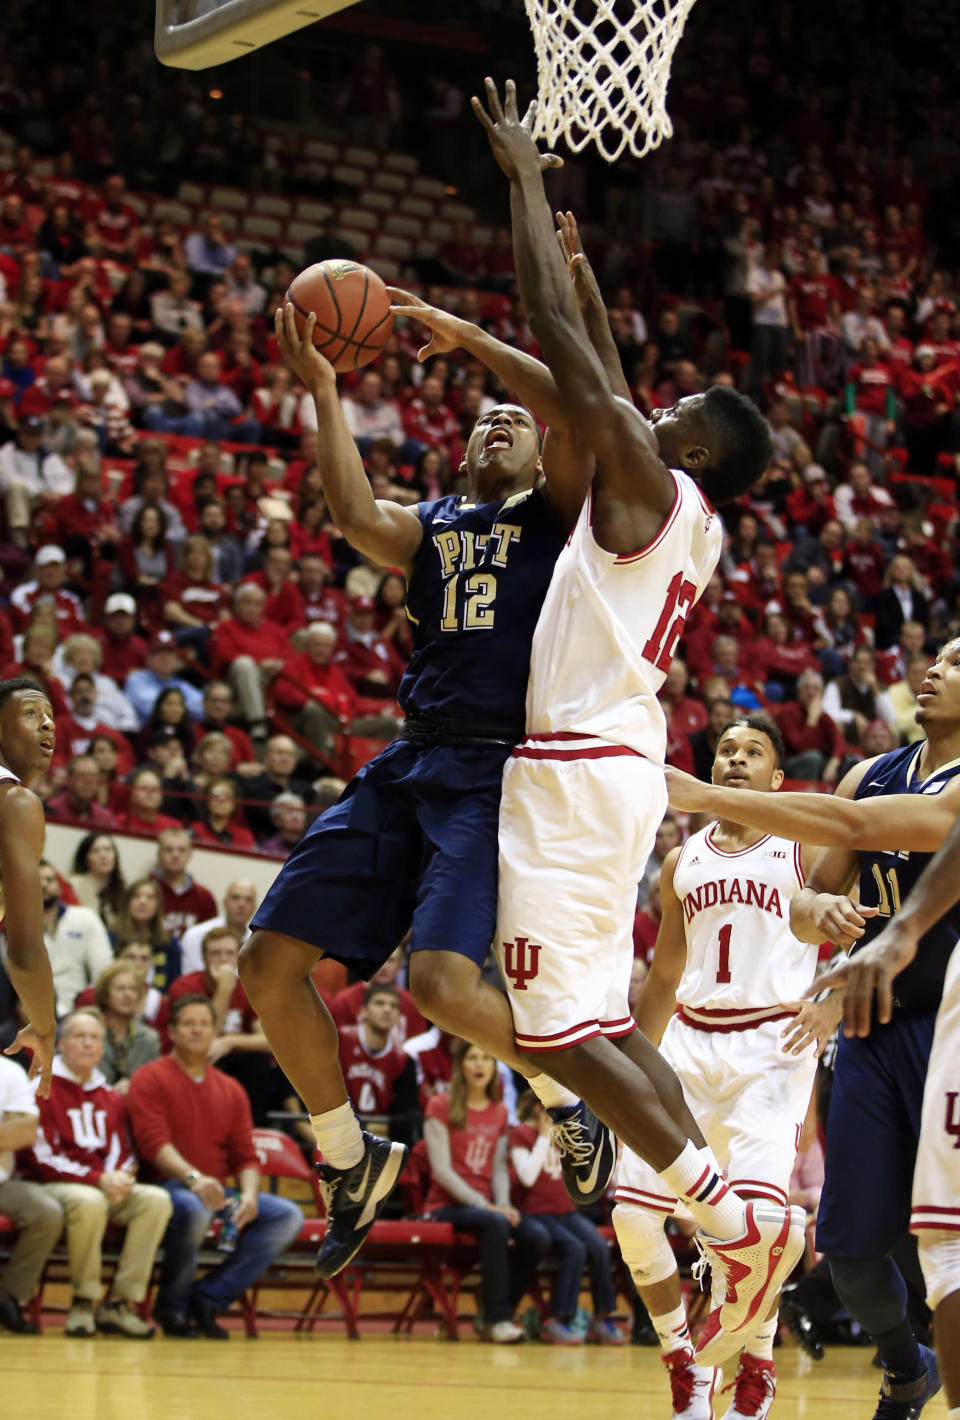 Pittsburgh's Chris Jones, left, puts up a shot against Indiana's Hanner Mosquera-Perea during the first half of an NCAA college basketball game Tuesday, Dec. 2, 2014, in Bloomington, Ind. (AP Photo/Darron Cummings)